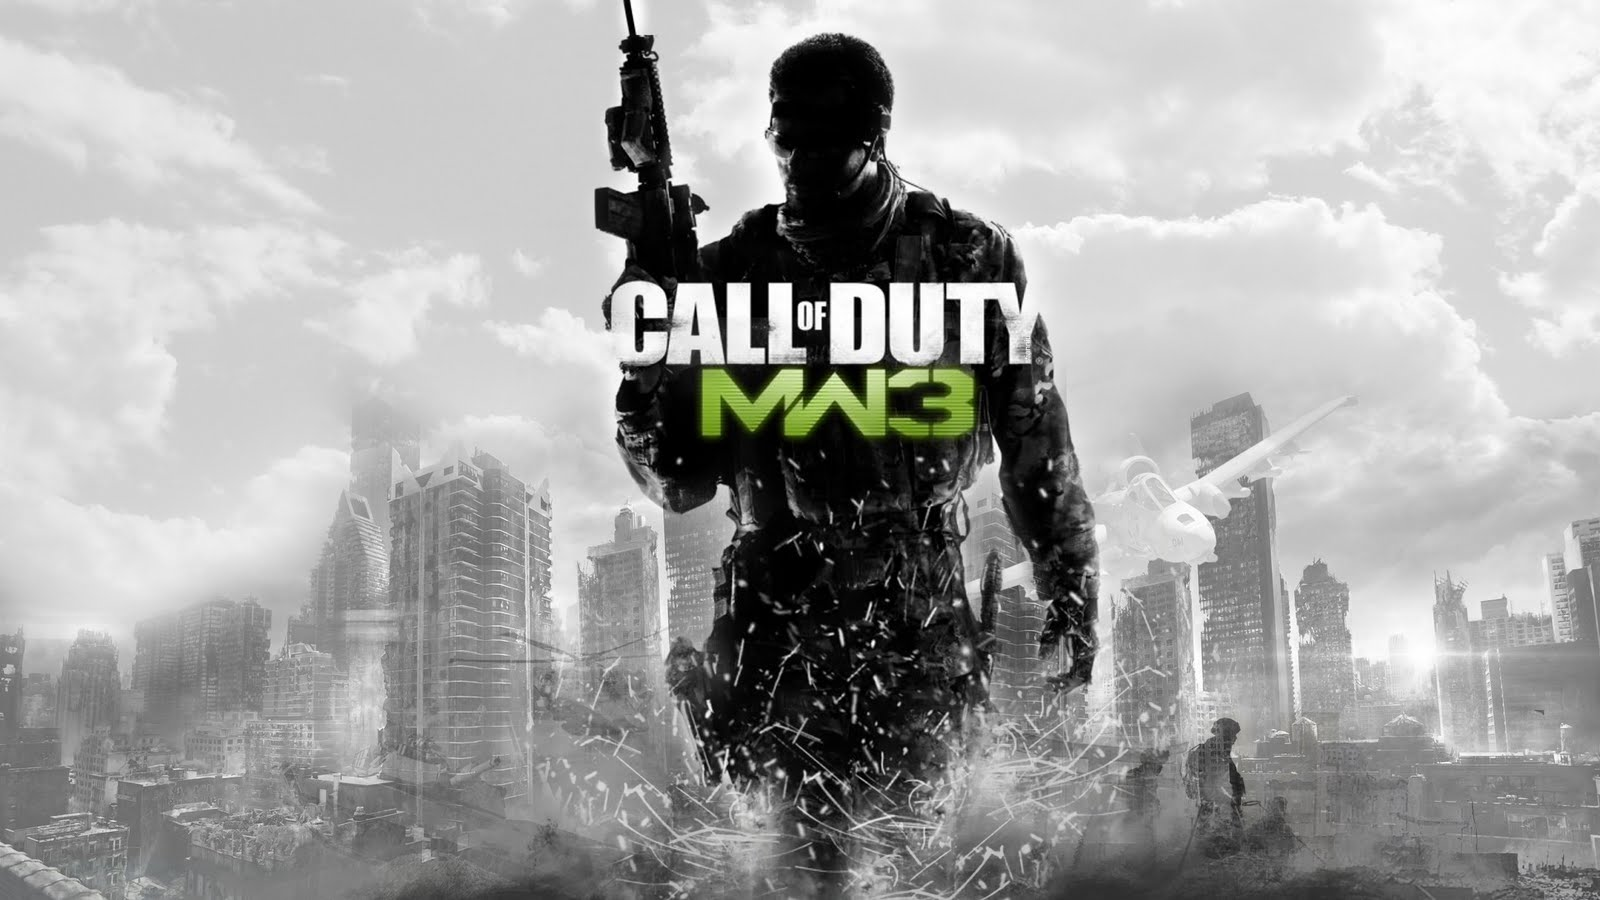 Call of Duty, Modern Warfare 3, FPS, First Person Shootre, gaming, games, videogames, video games, article, Future Pixel, release date